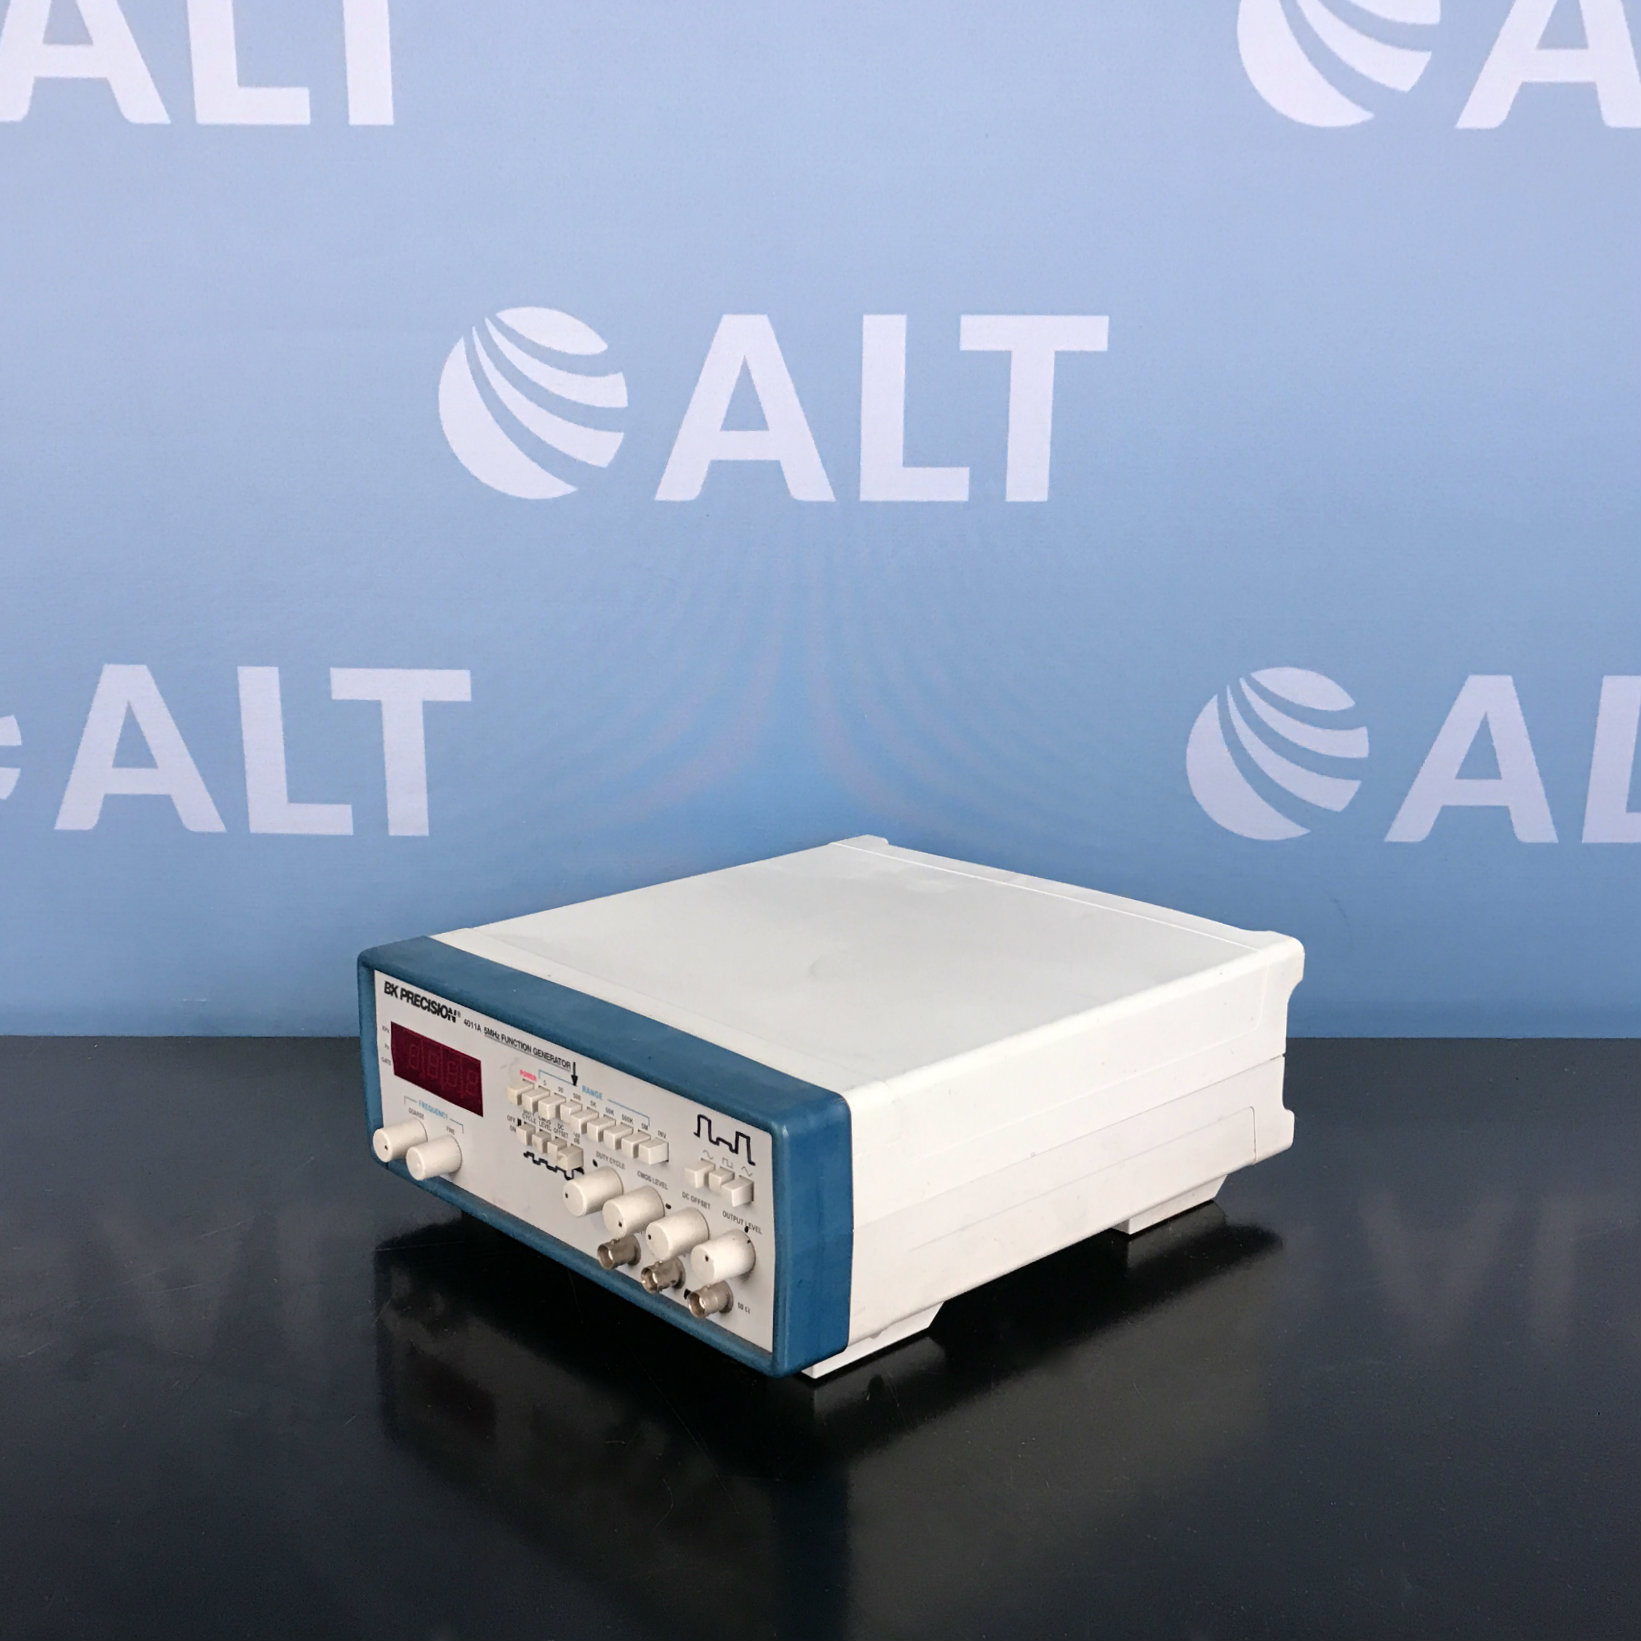 B&K Precision 4011A 5 MHz Function Generator Image